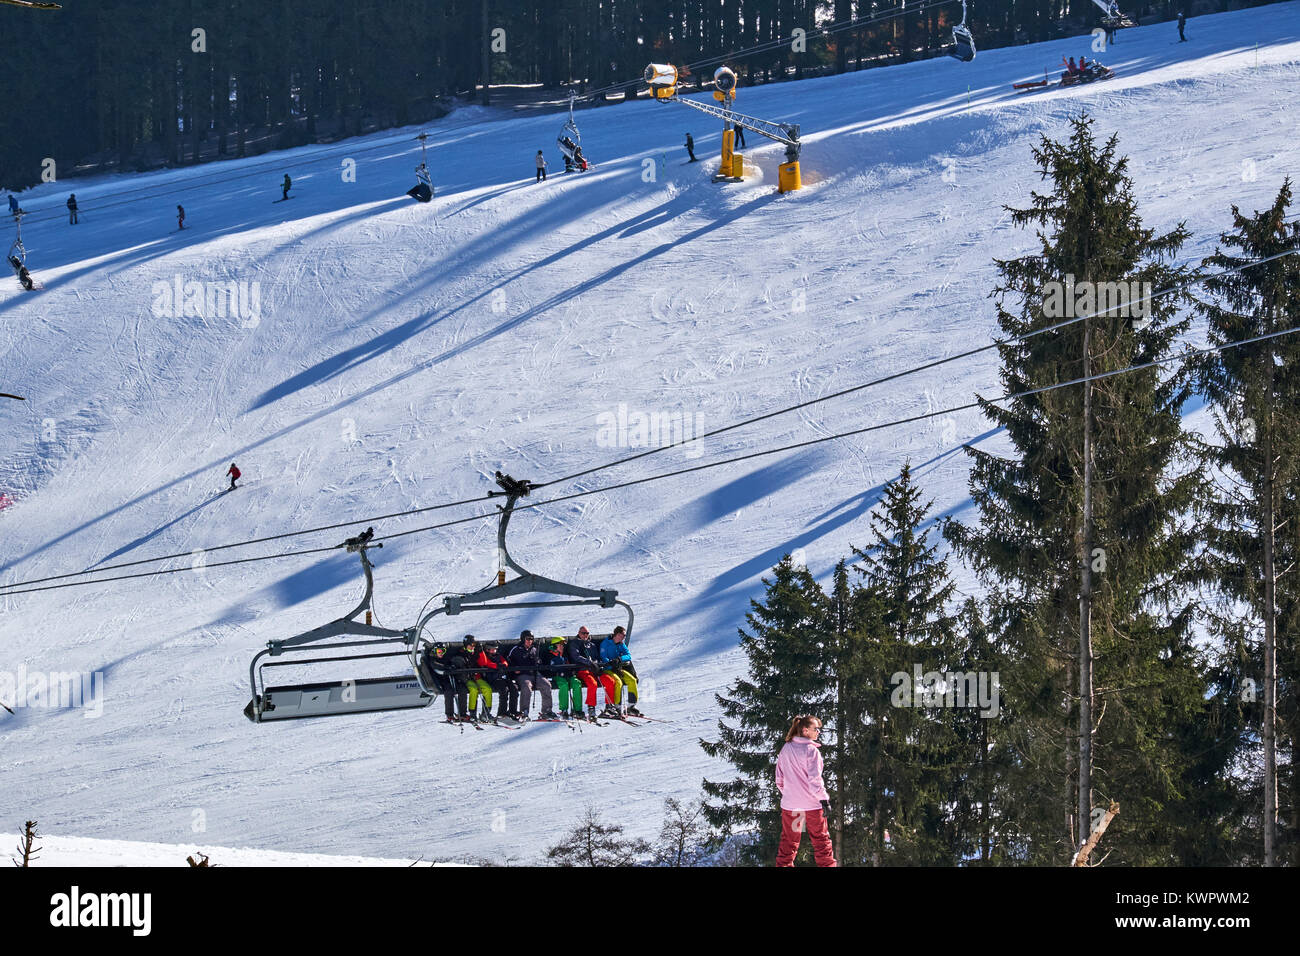 WINTERBERG, GERMANY - FEBRUARY 15, 2017: Chairlift hanging over a ski piste at Ski Carousel Winterberg - Stock Image